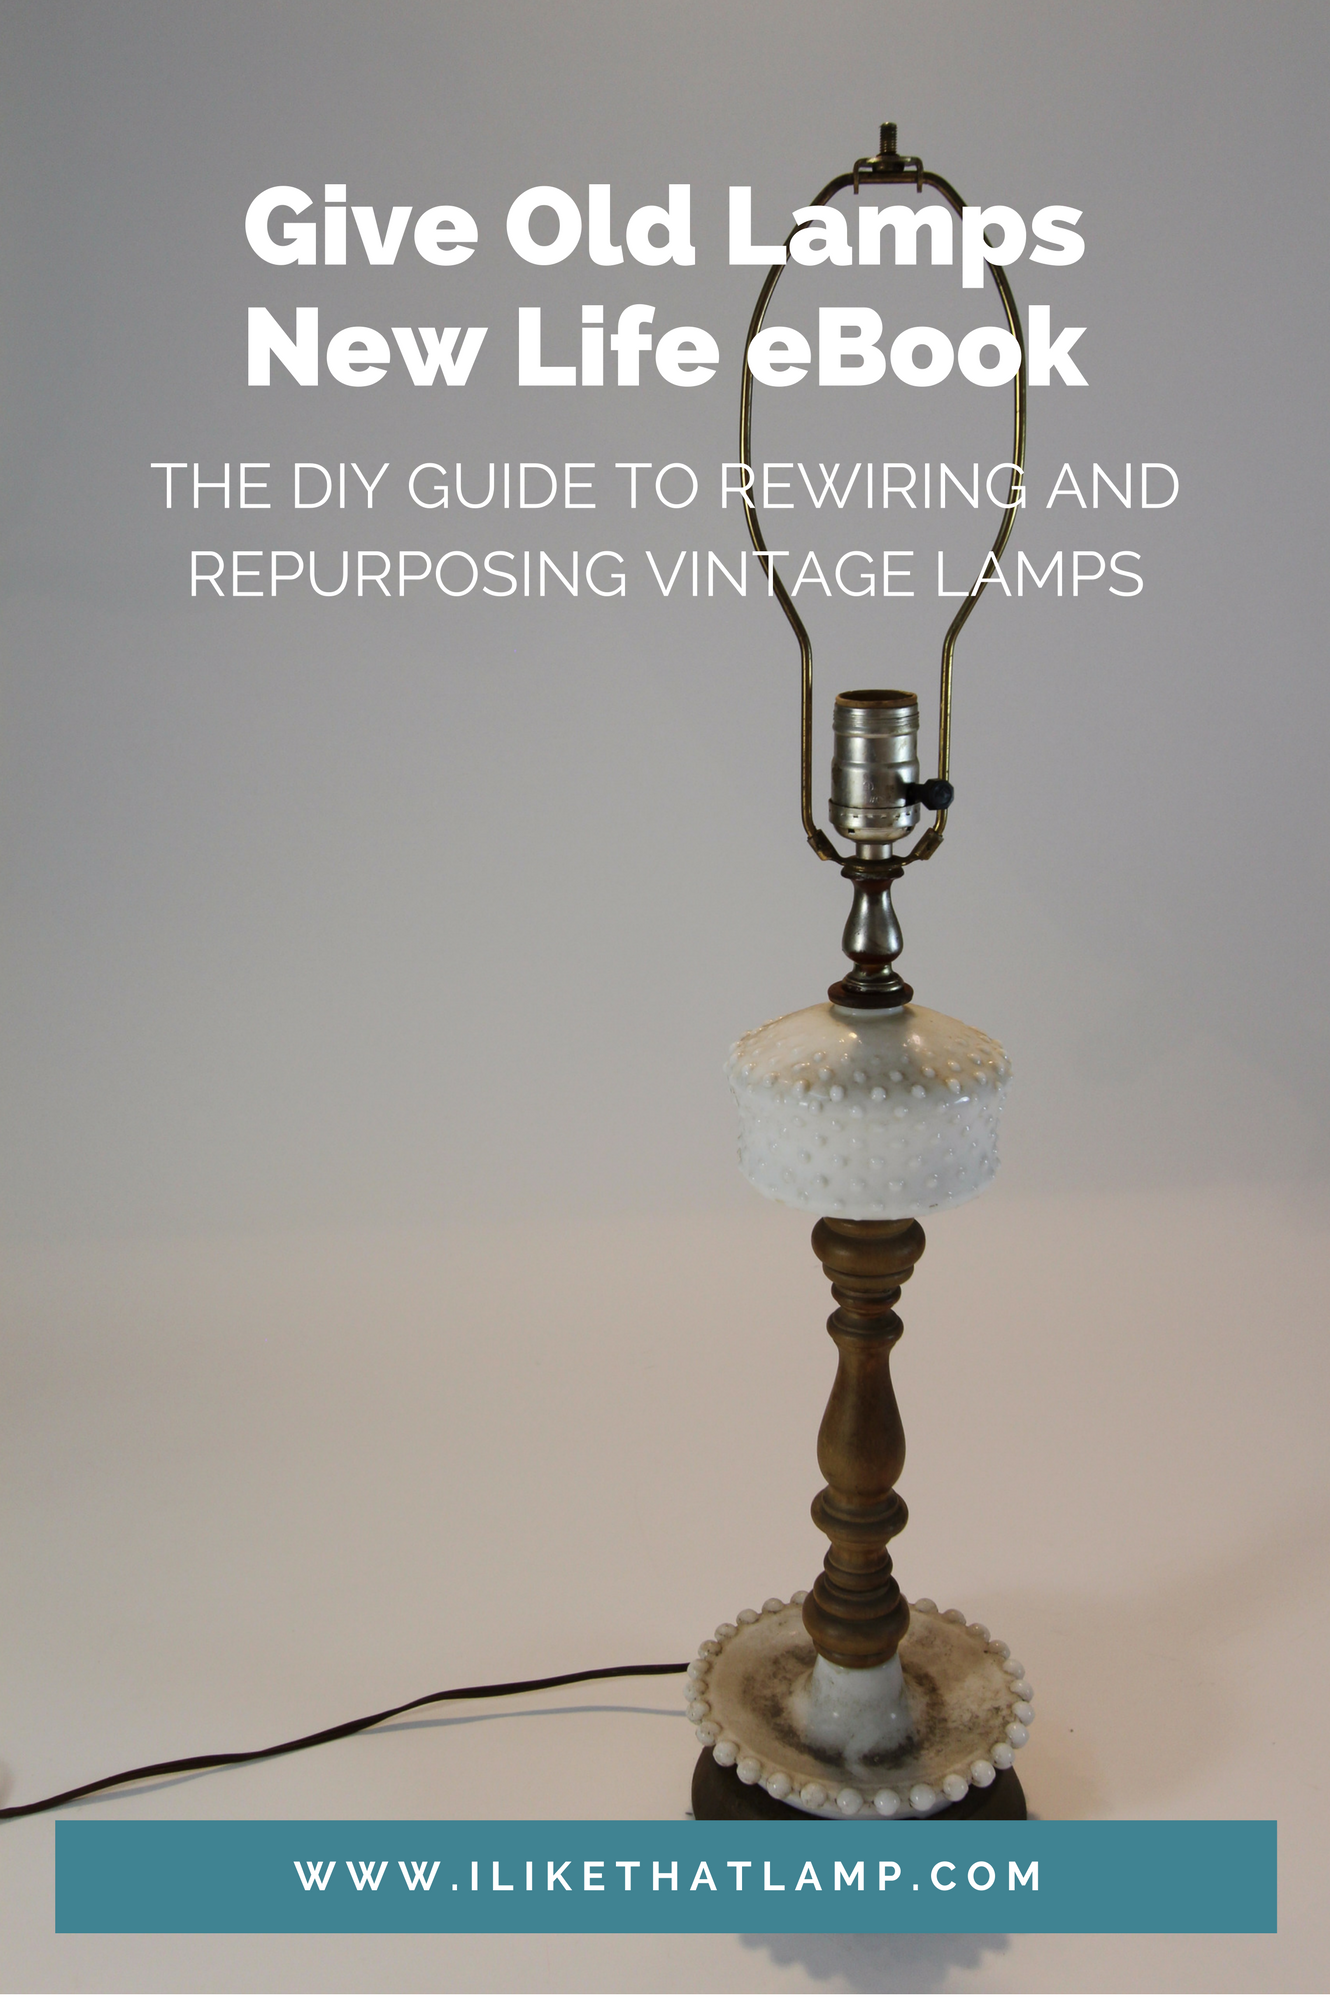 Diy how to rewire an old lamp wiring info how to rewire old lamps and repurpose vintage lamps full diy guide rh pinterest co uk keyboard keysfo Images